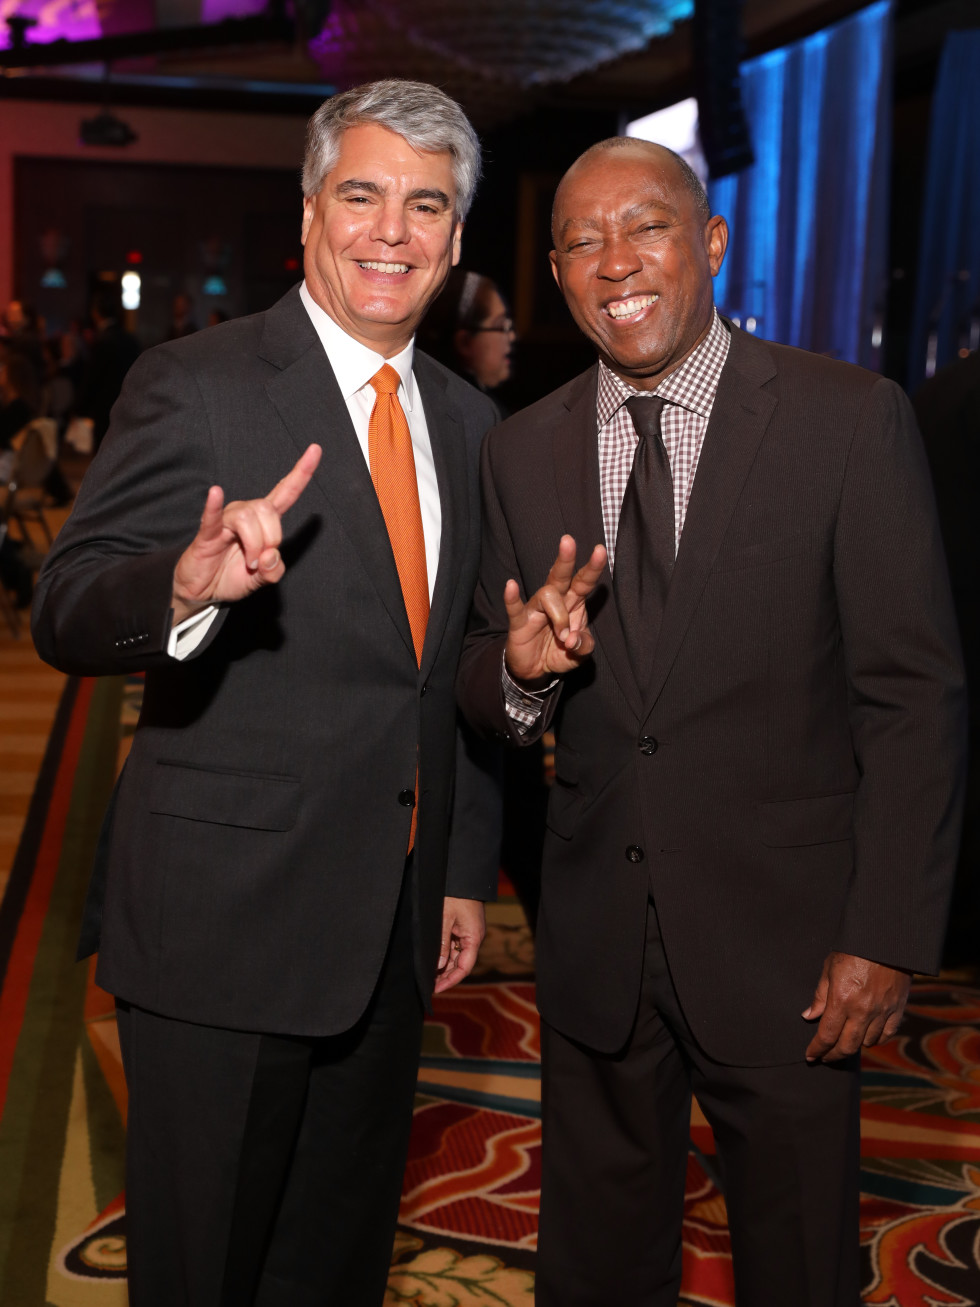 Houston, University of Texas at Austin Guardian of the Human Spirit Award Luncheon, November 2017, Gregory Fenves, Sylvester Turner